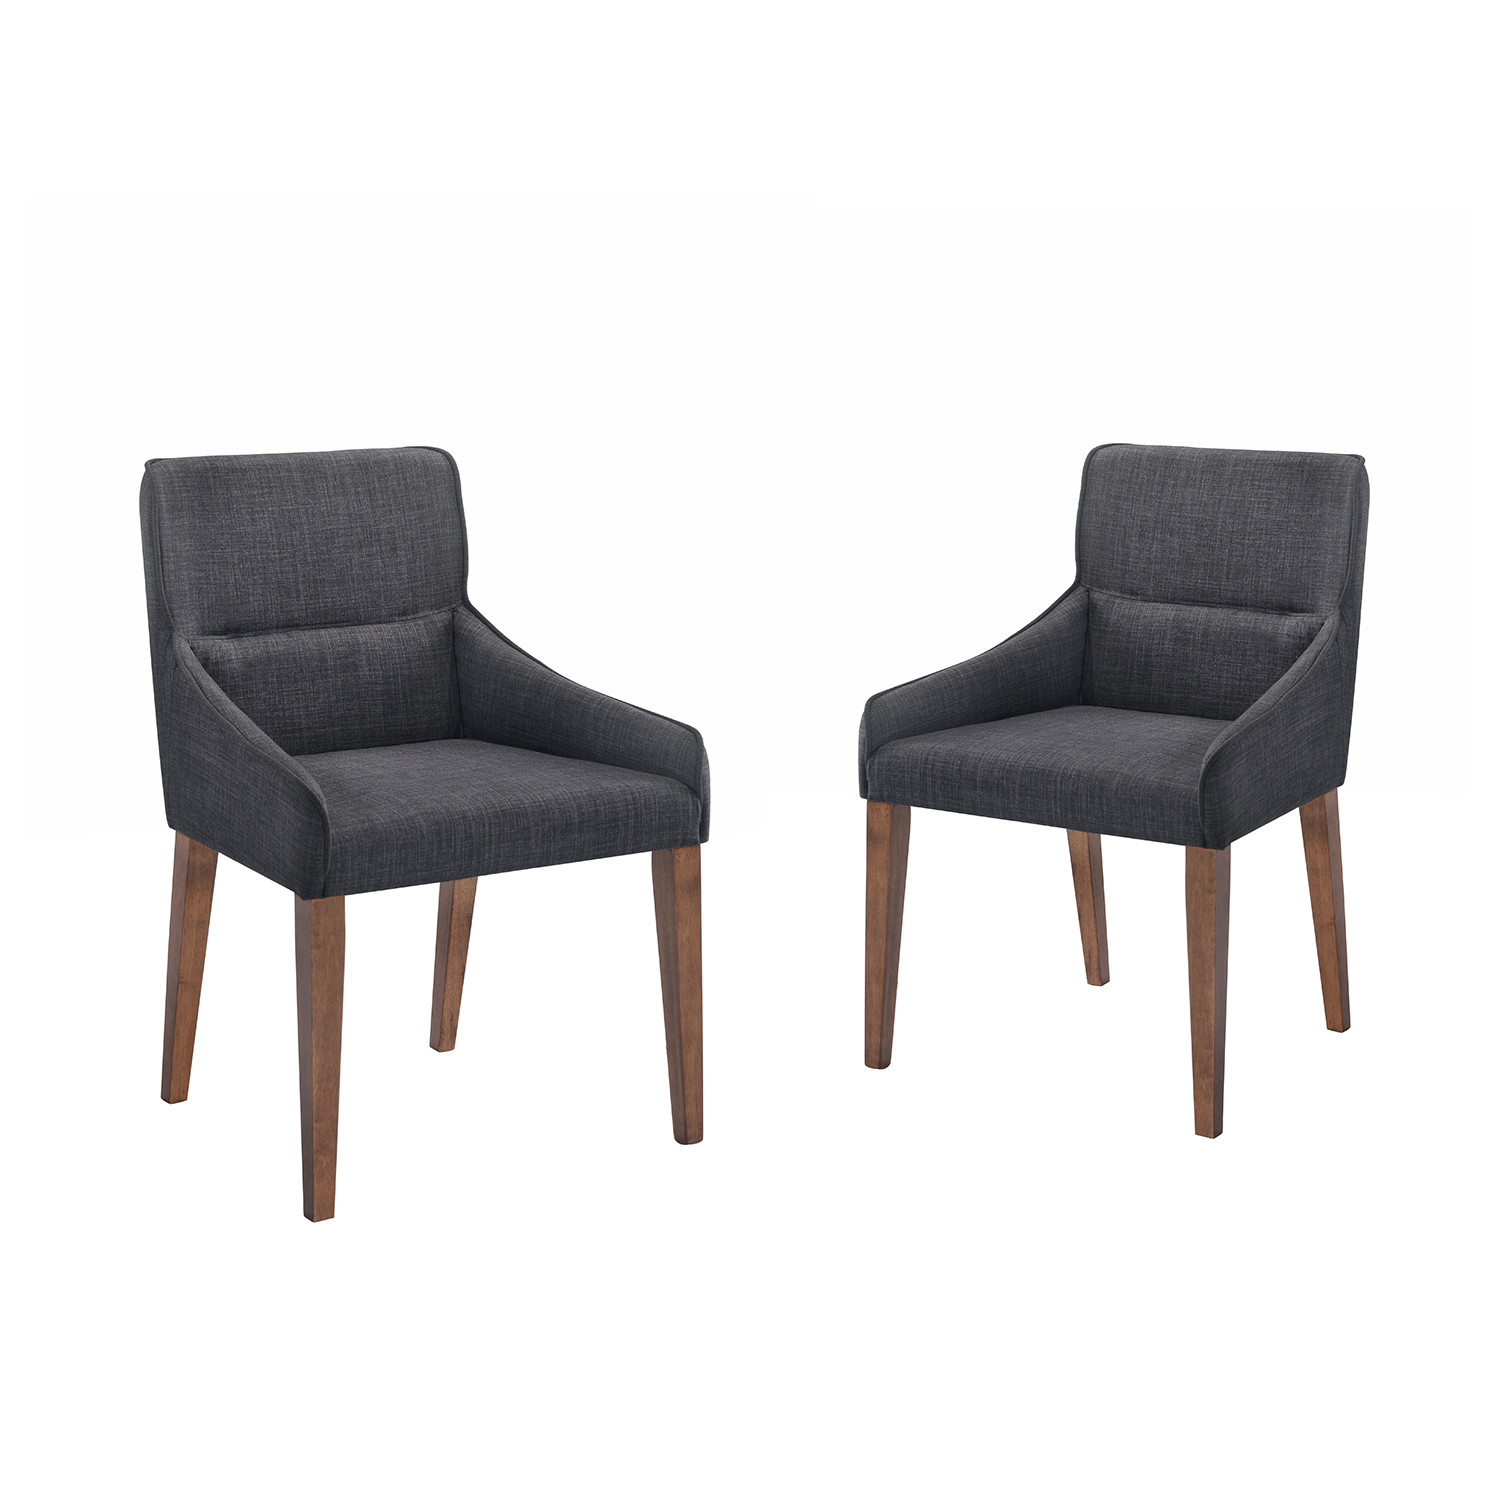 Ellen Dining Side Chair Set of 2 Charcoal Omax  : c3e61cfe7a364fcba11ae6d794e90a60large from www.touchofmodern.com size 1500 x 1500 jpeg 164kB